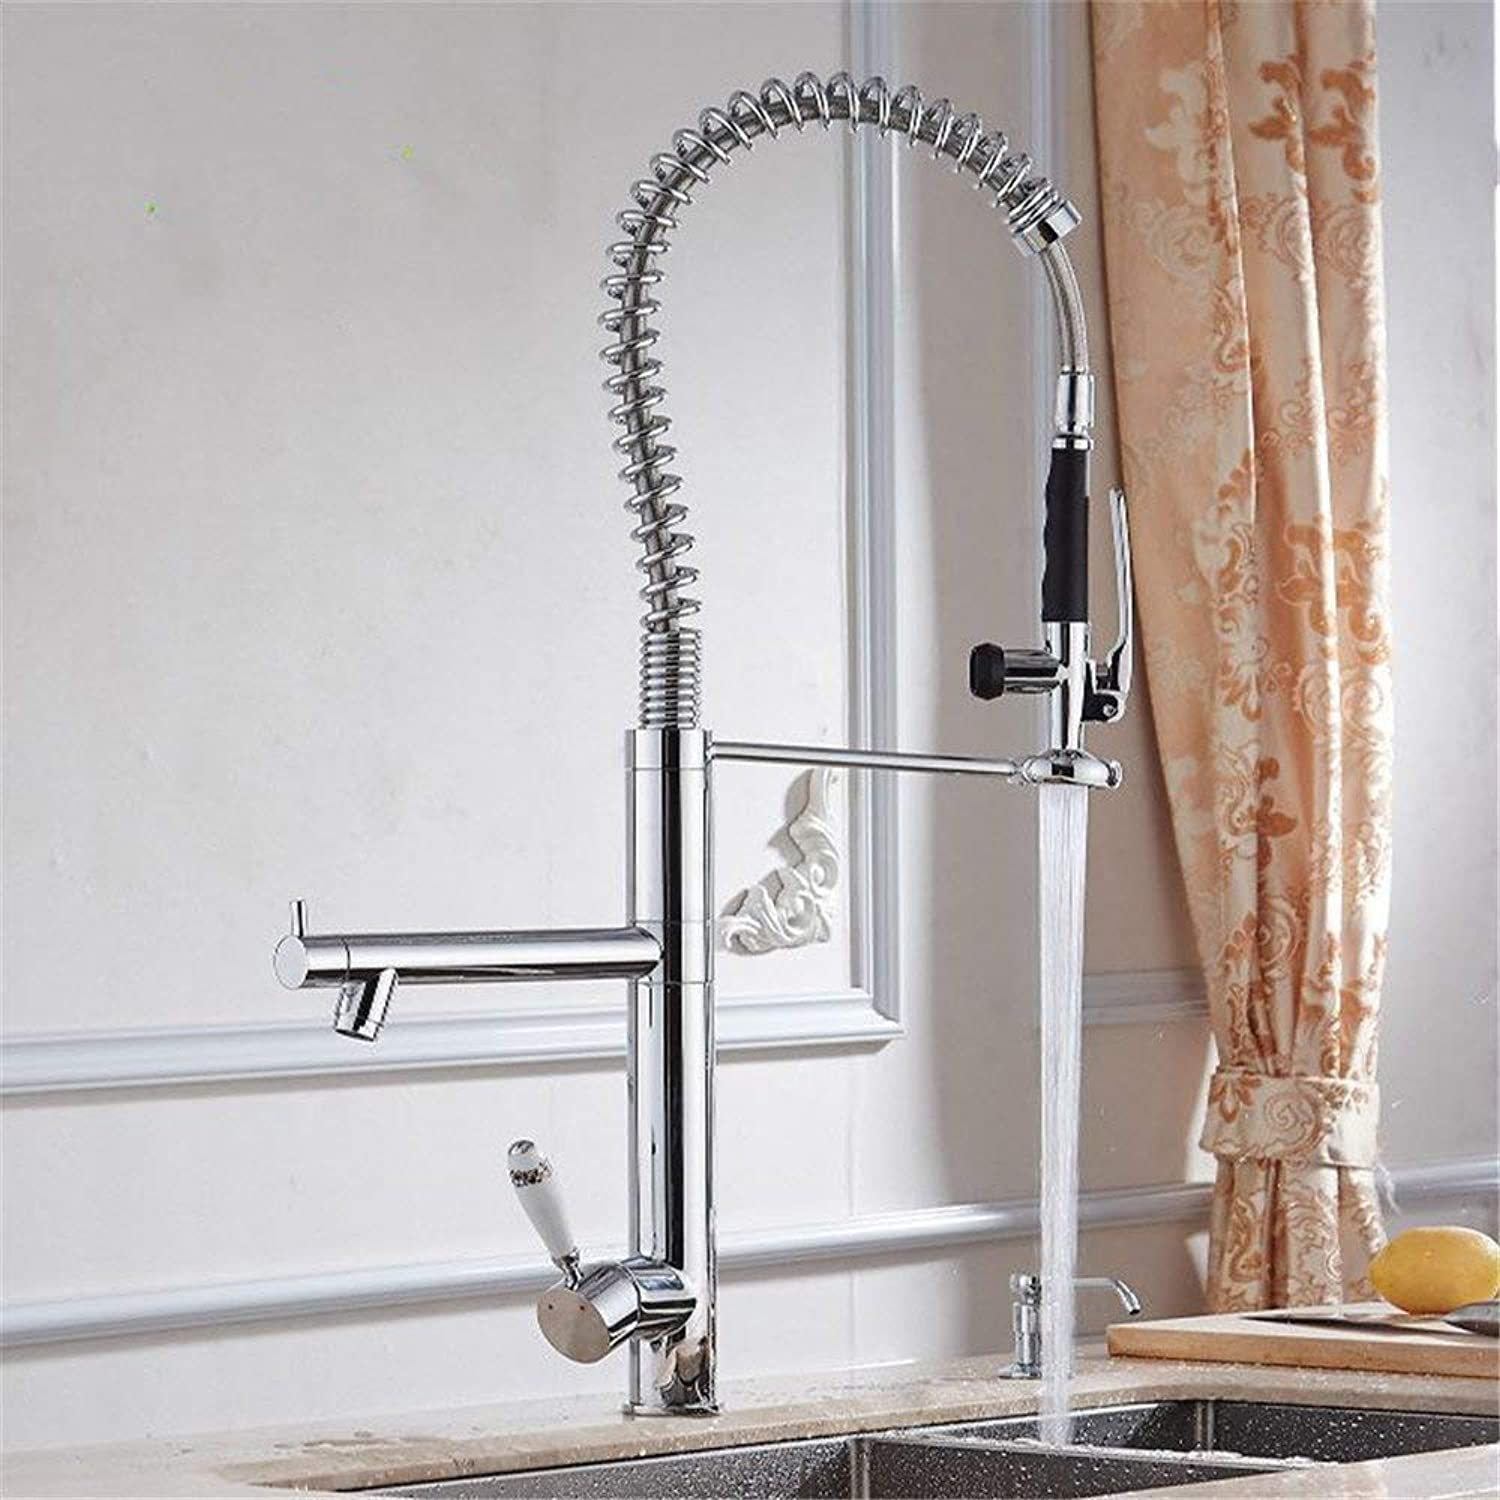 Copper chrome kitchen faucet spring drawing high pressure hot and cold faucet environmental redating faucet A (color   -, Size   -)